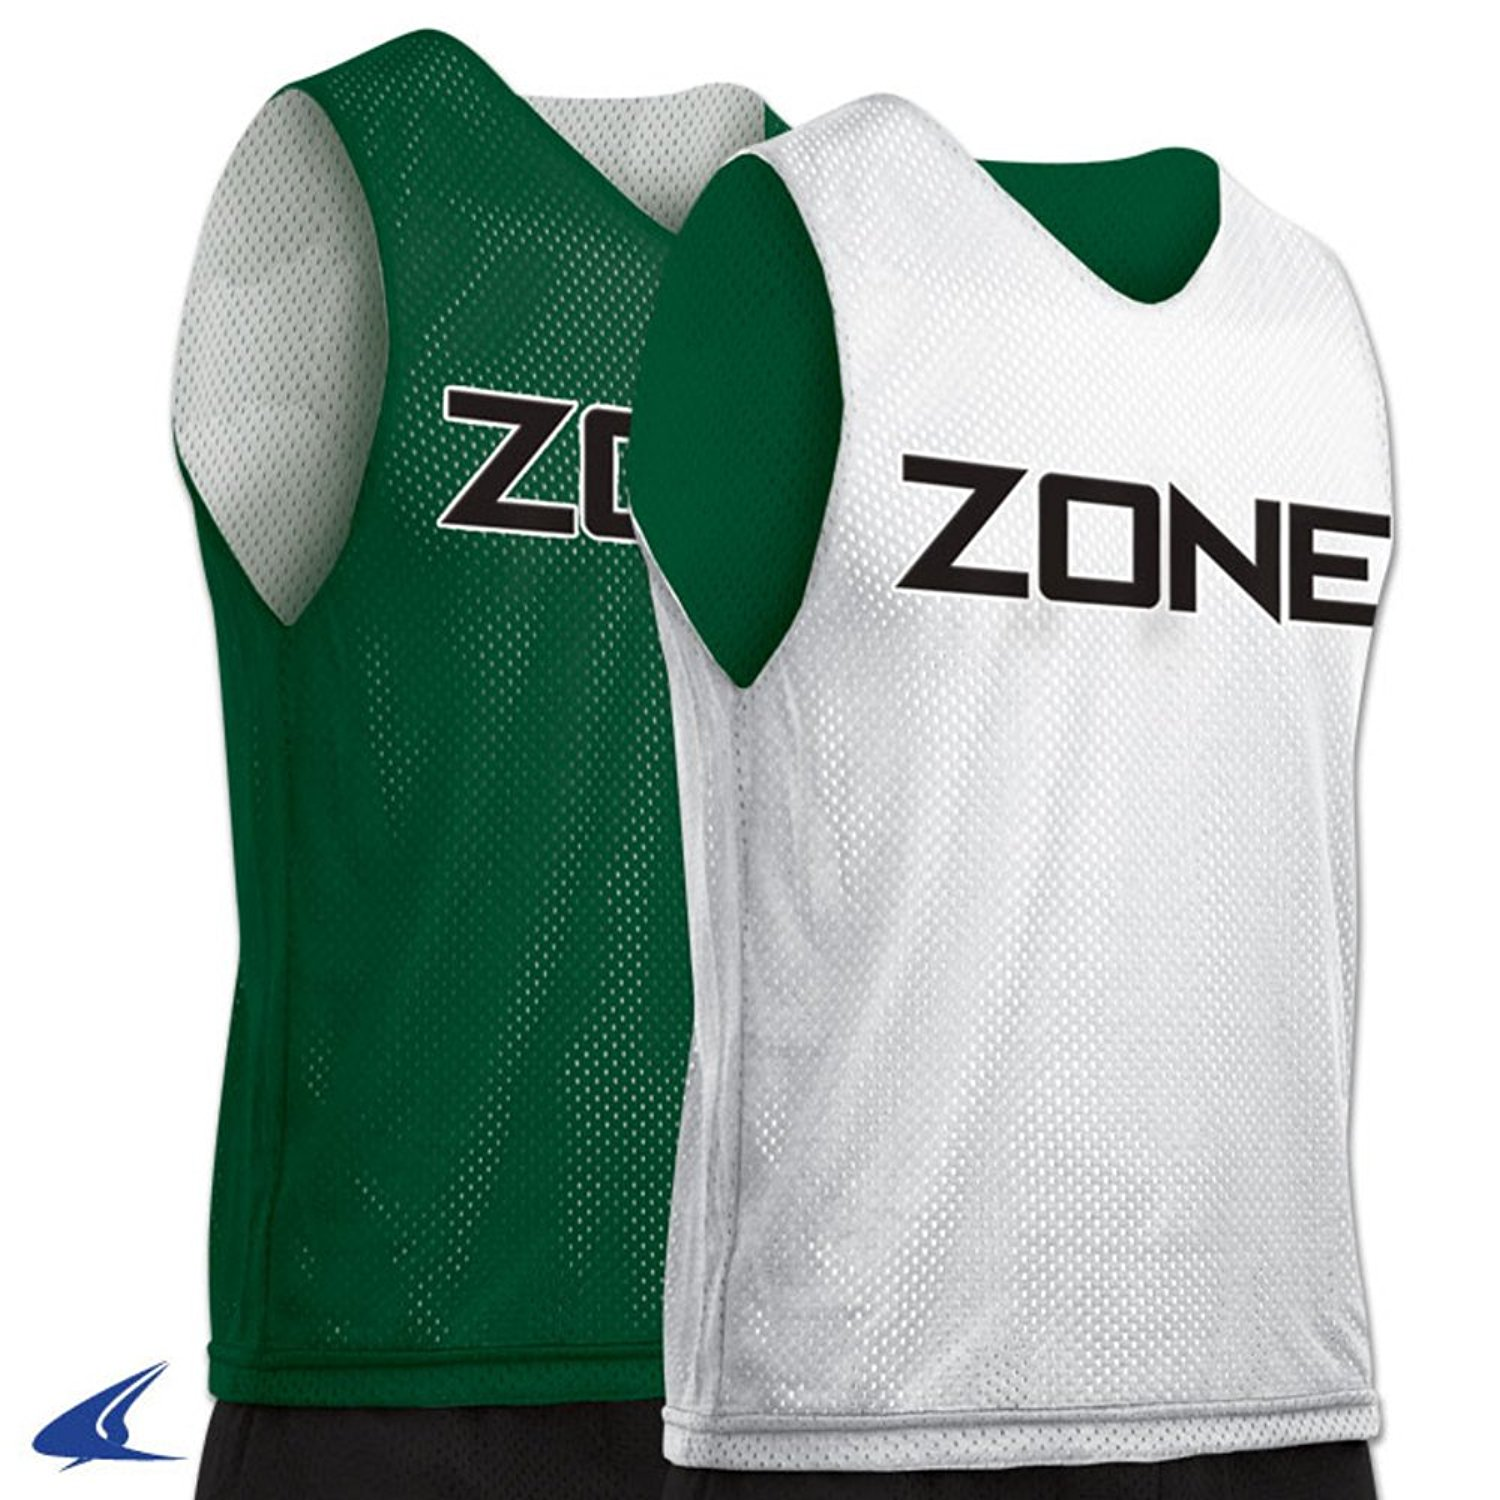 8bba2925b Get Quotations · CHAMPRO BBJP YOUTH REVERSIBLE BASKETBALL JERSEY BBJPY YOUTH